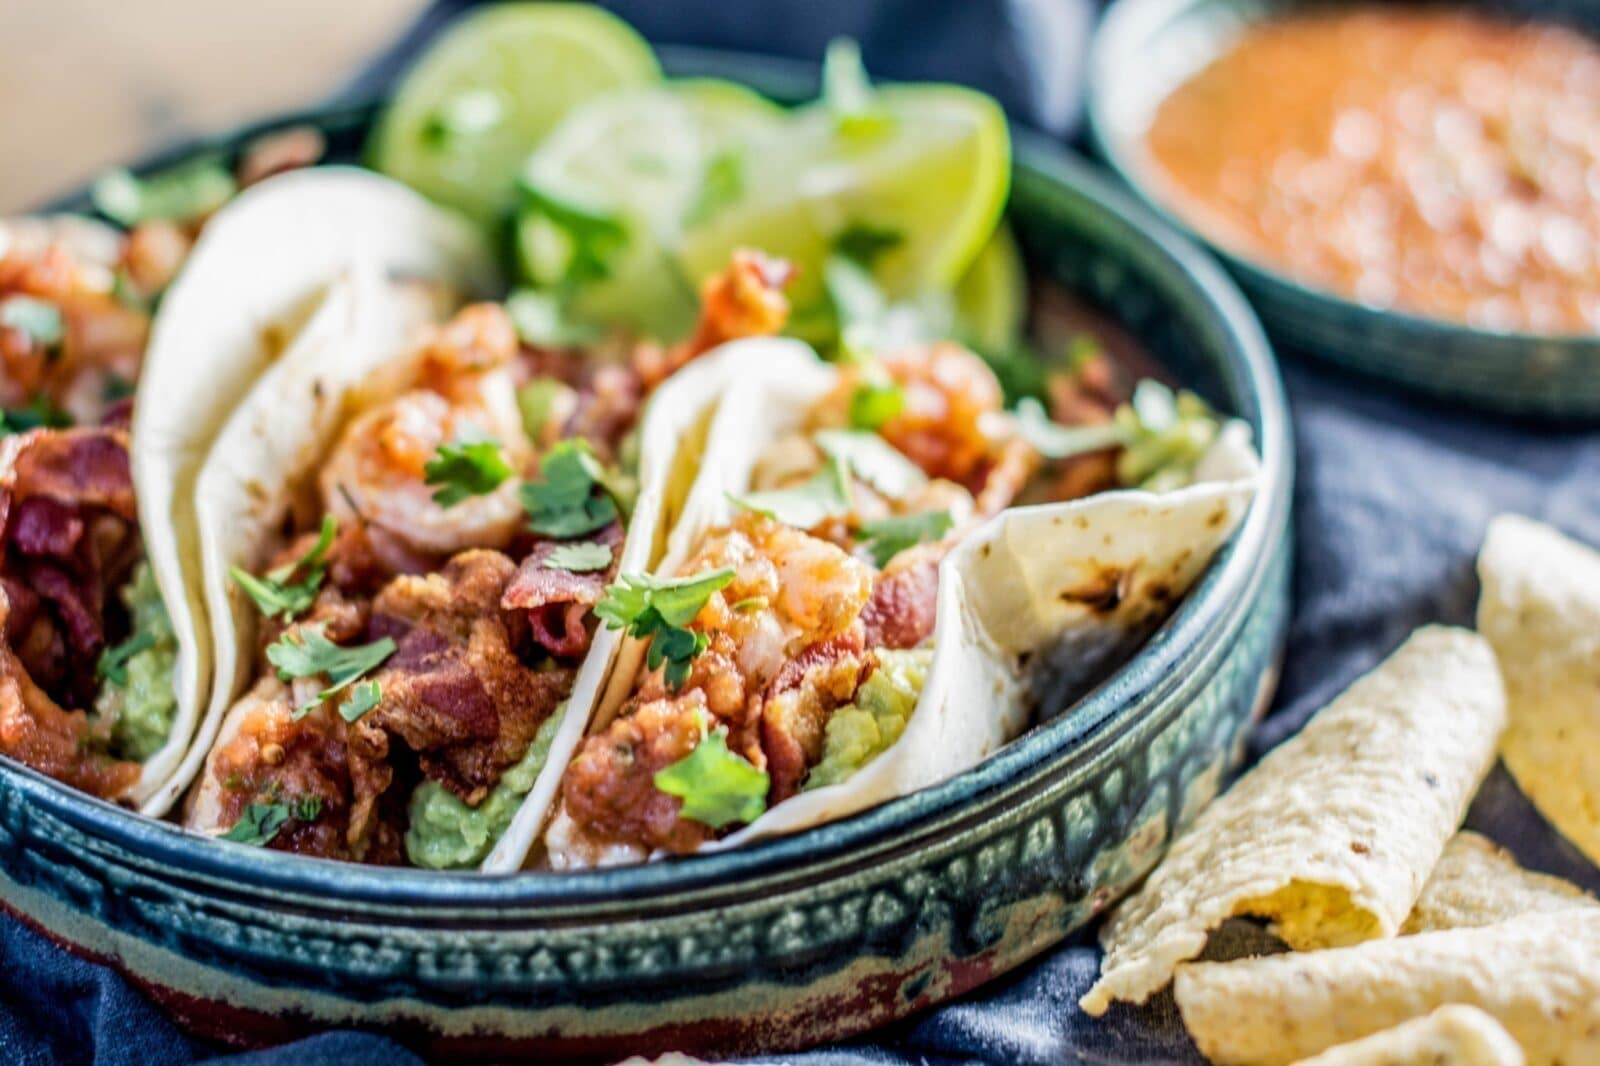 Need inspiration? Try the Roasted Chipotle Salsa served generously over these Tequila Shrimp Tacos! Recipes at Little Figgy Food